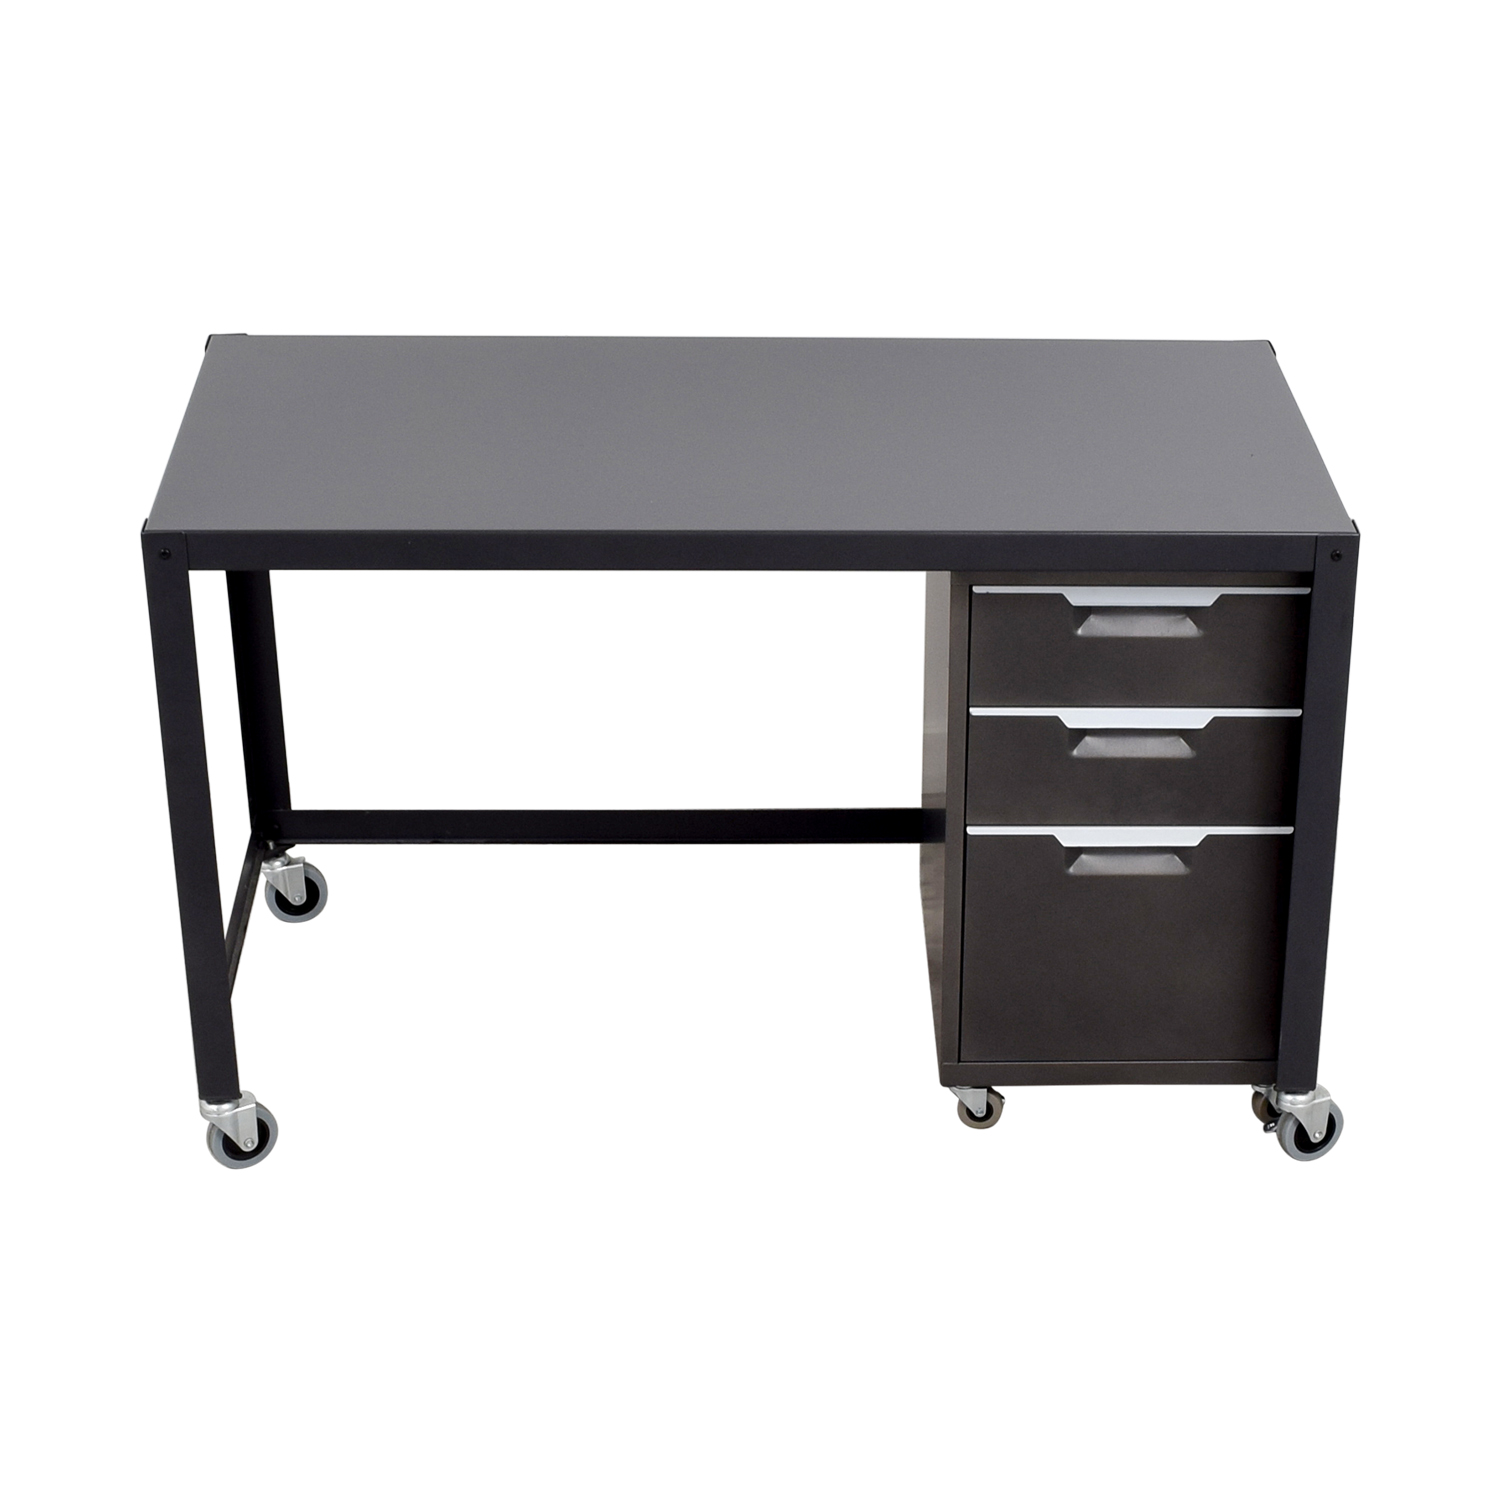 69% OFF - Metal Desk on Castors with Filing Cabinet / Tables